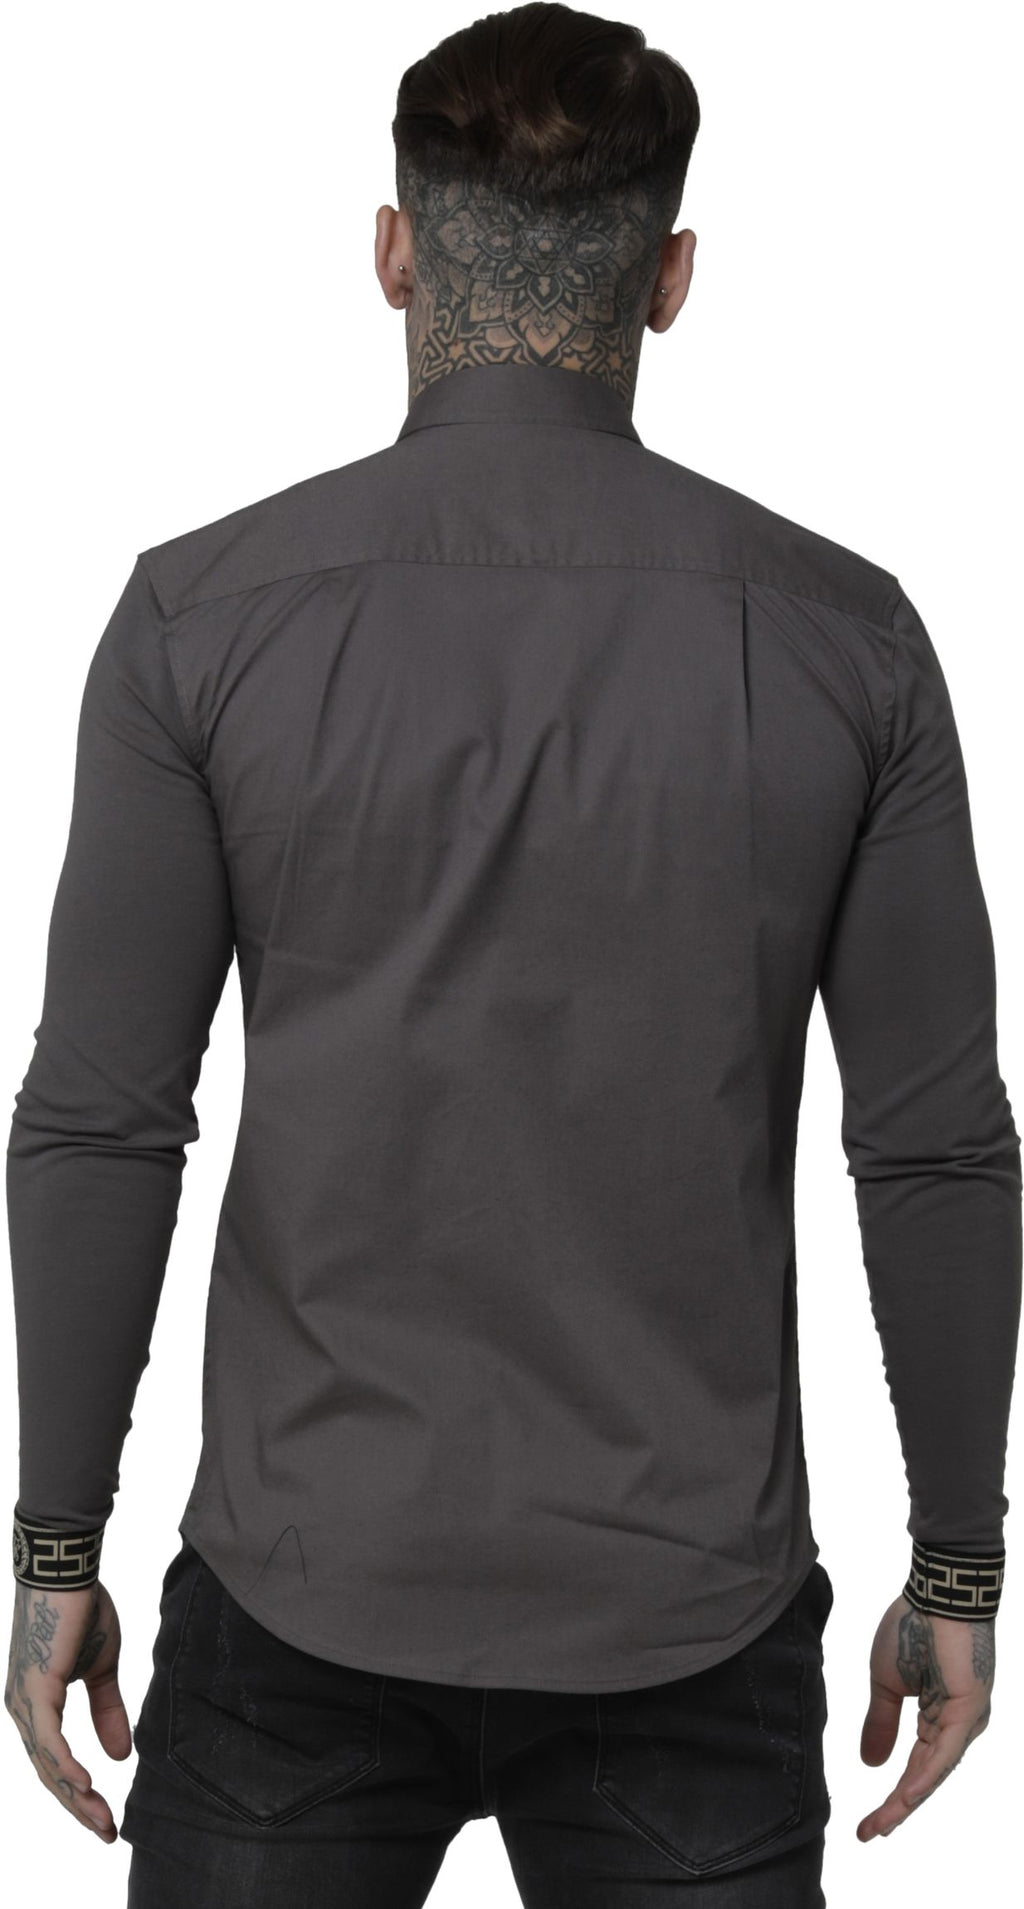 Sik Silk Cartel Jersey Long Sleeve Shirt Charcoal